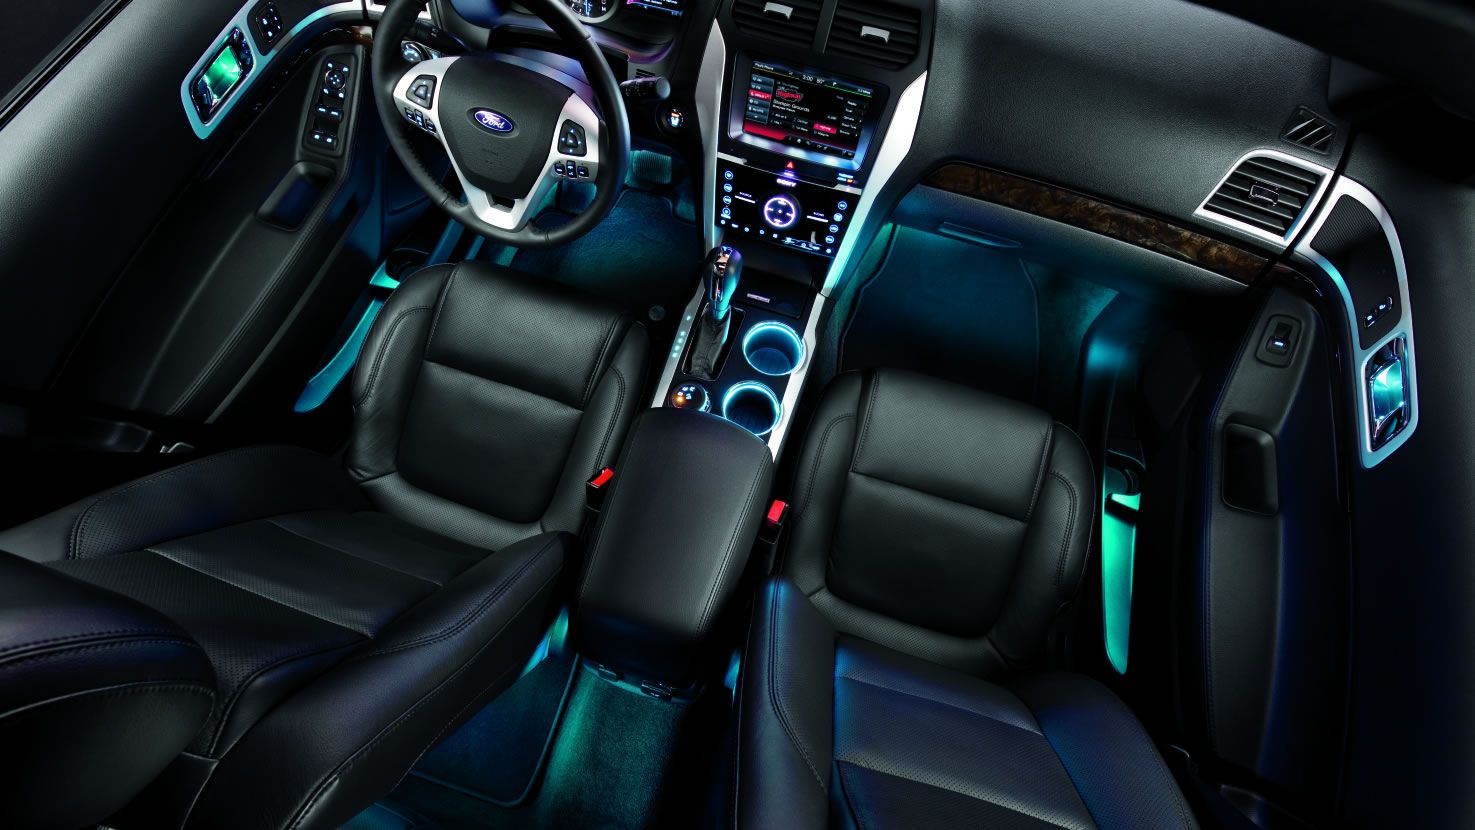 Export Ford Explorer 2015 Interior Details Ford fusion